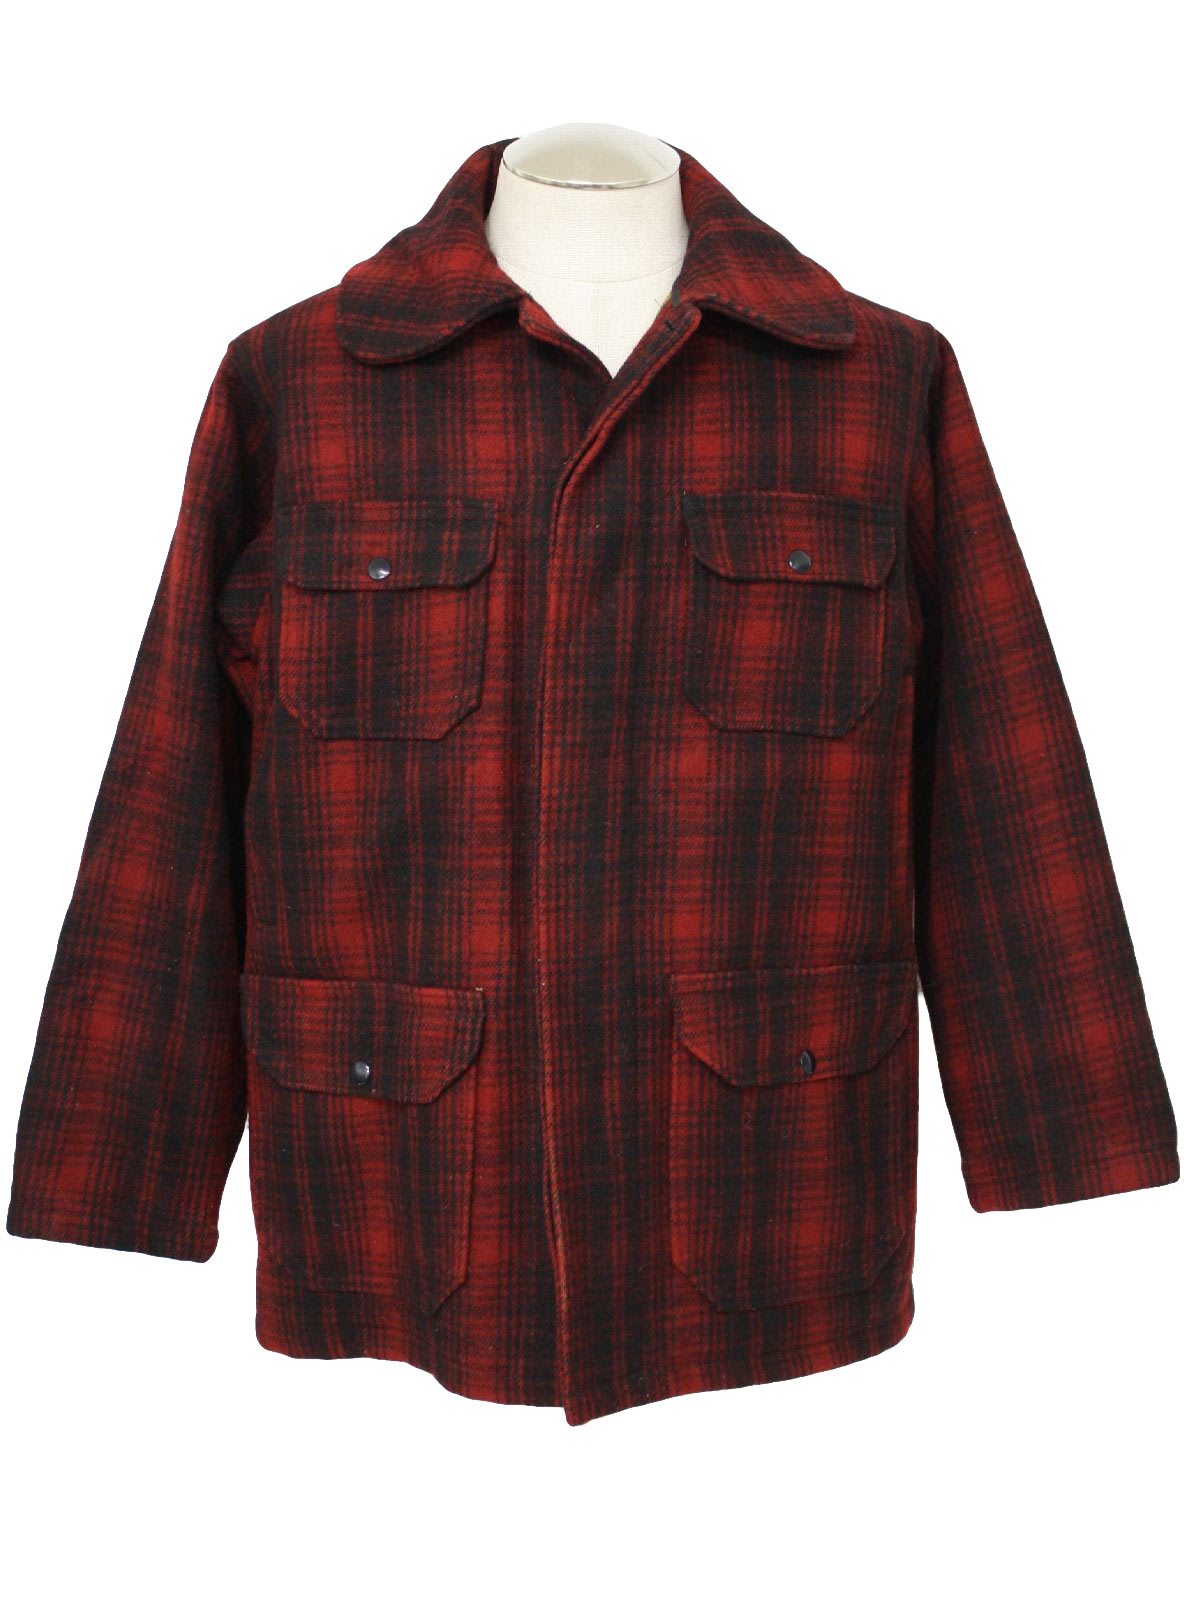 84a699d5a8976 Vintage Woolrich 60's Jacket: 60s -Woolrich- Mens black and red wool ...